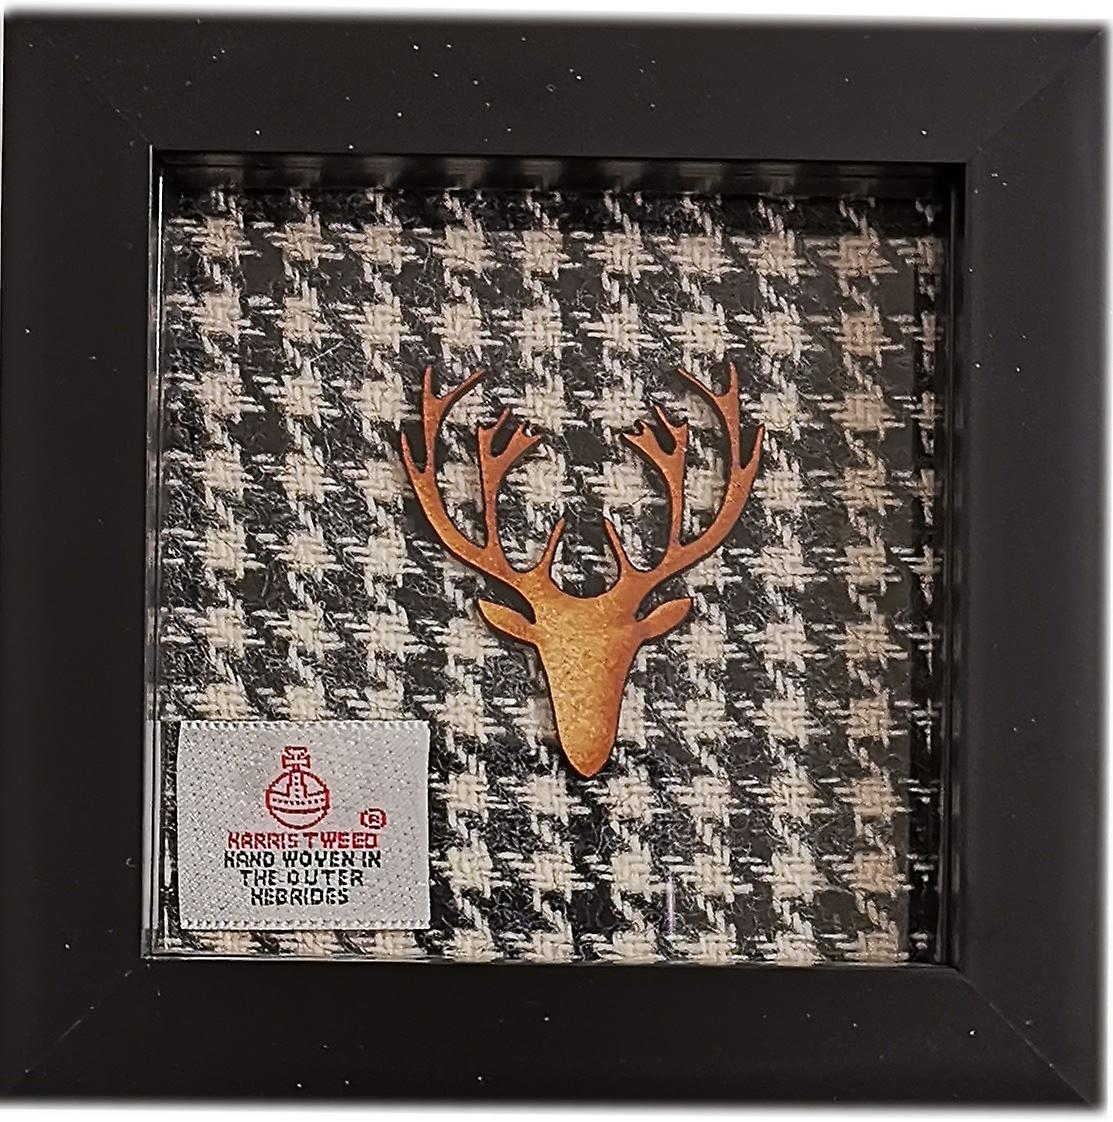 Laura Ann Cards Frame - Black & White Dog Tooth Fabric with Wooden Love, Black Frame